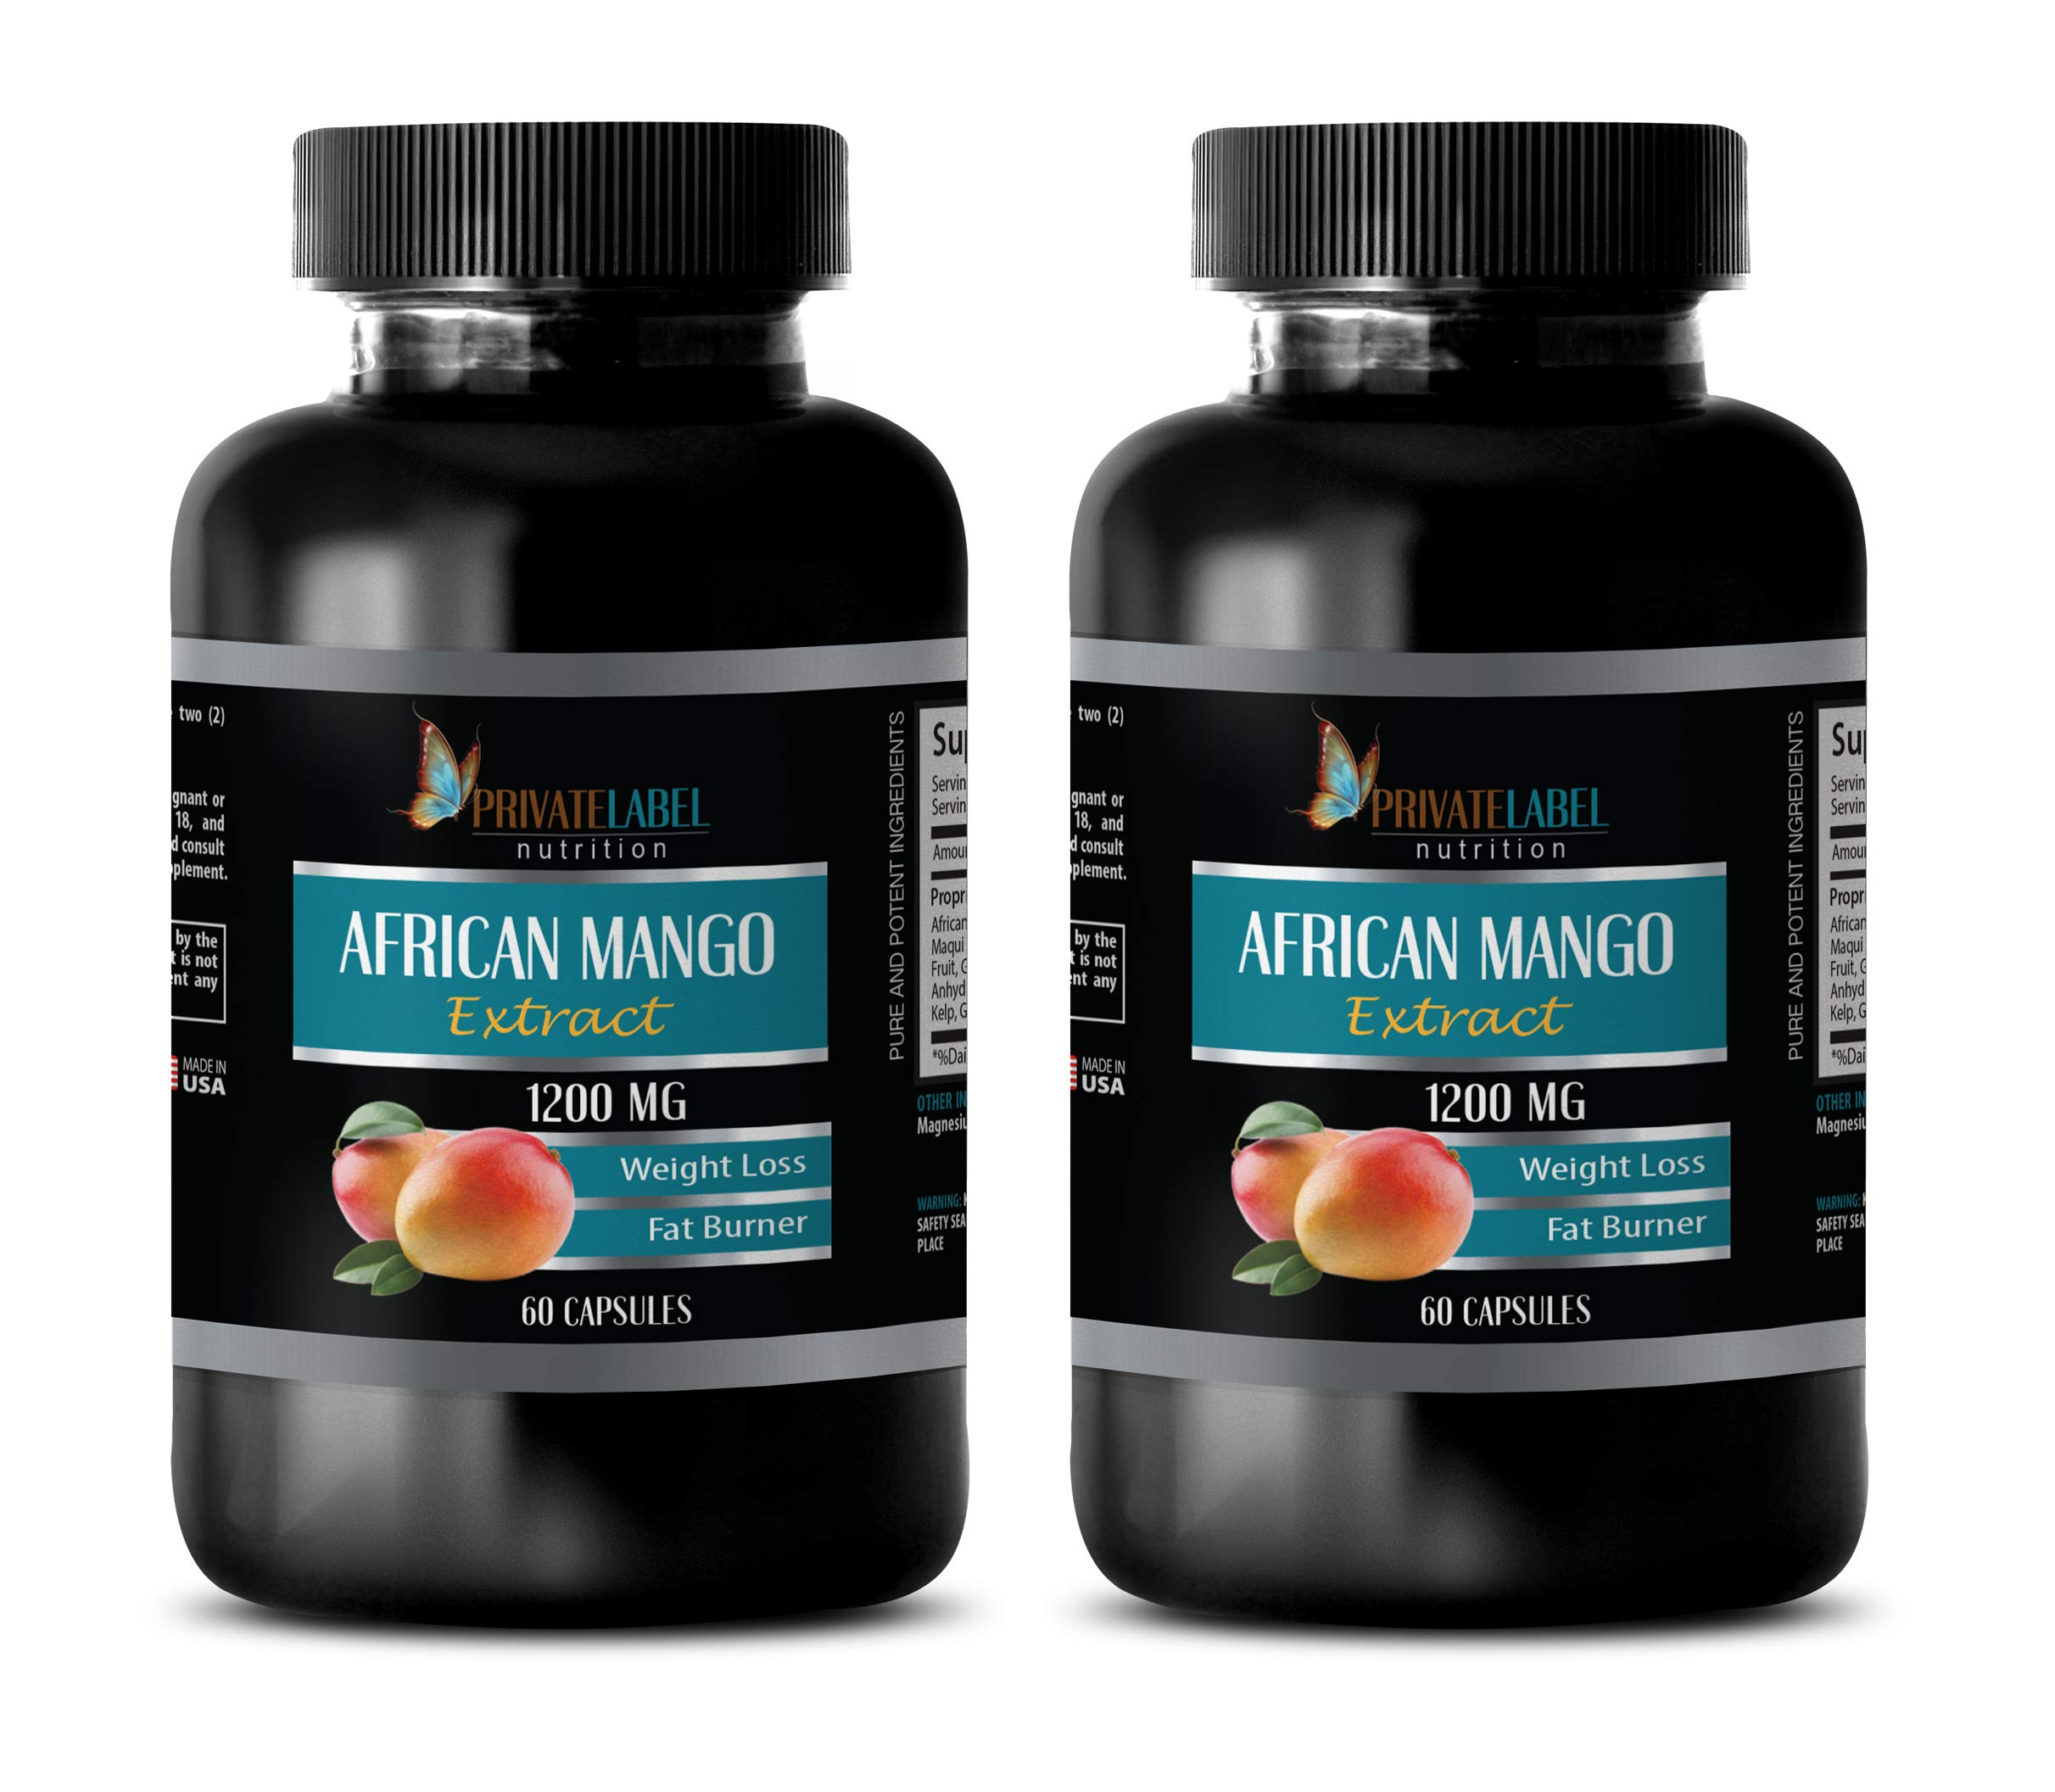 Fat Burner Supplements for Men - African Mango Extract 1200 MG - African Mango Advanced - 2 Bottles (120 Capsules)